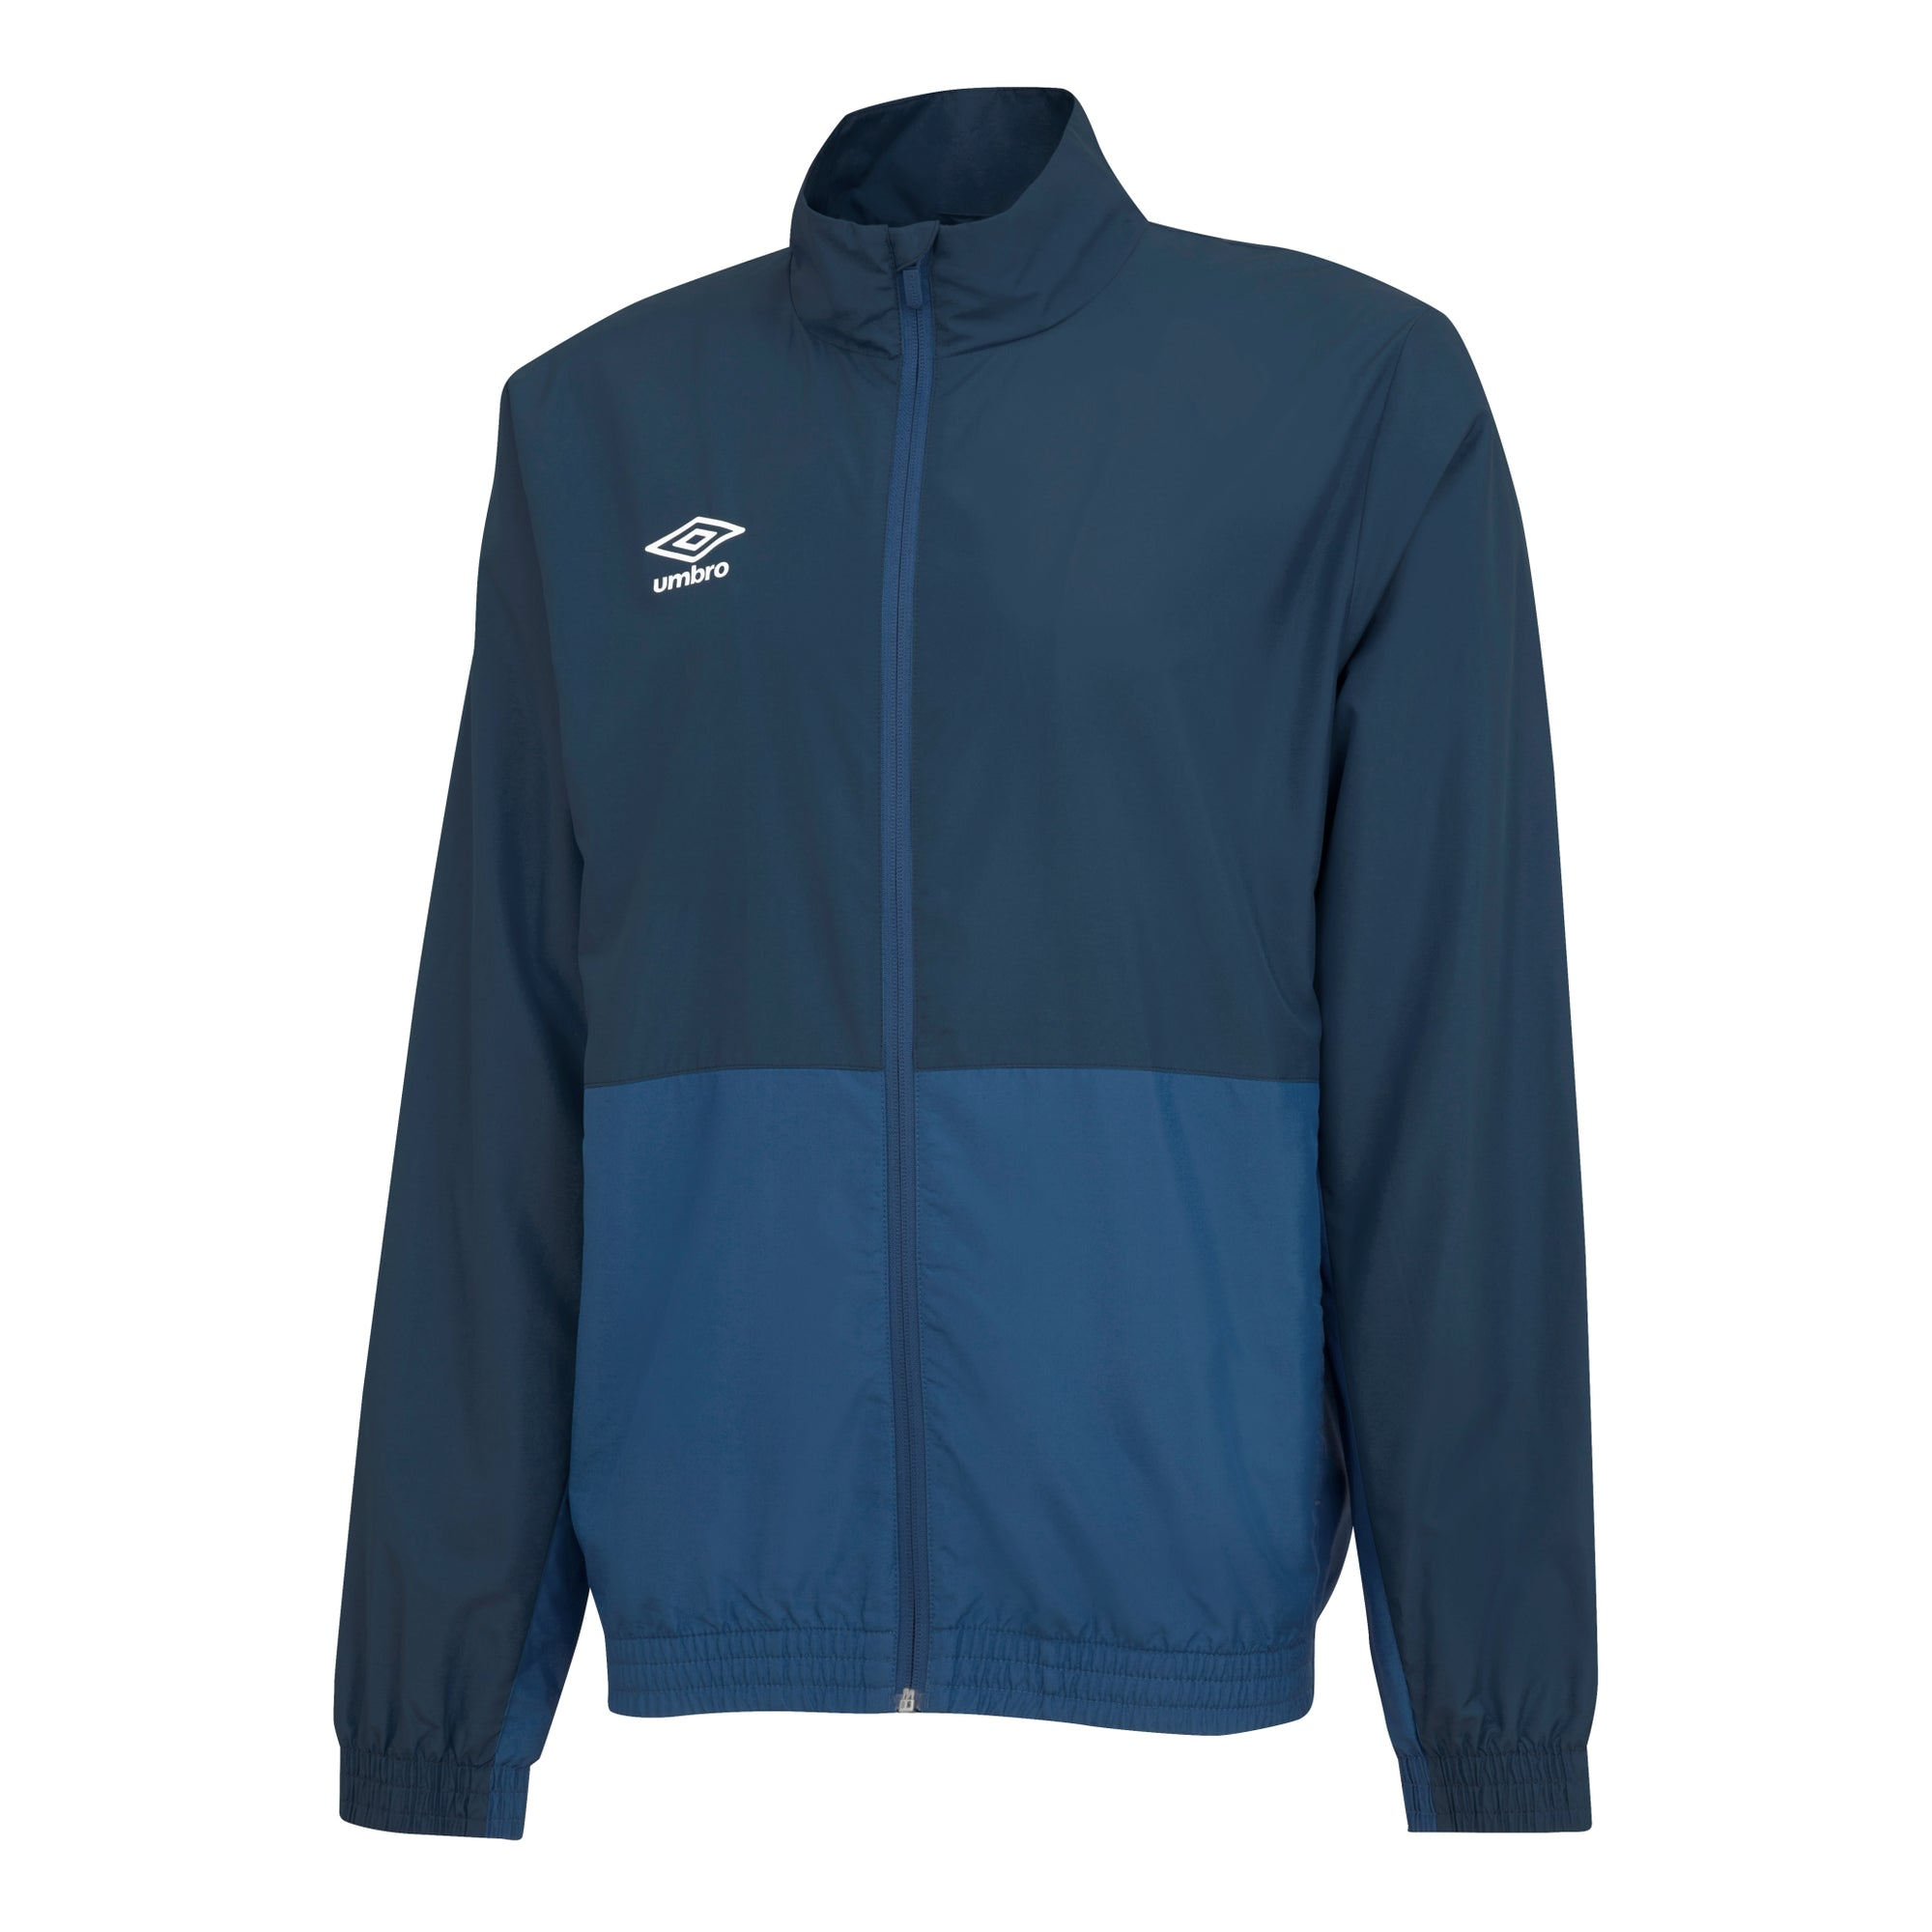 Umbro Training Woven Jacket - Dark Navy/Navy